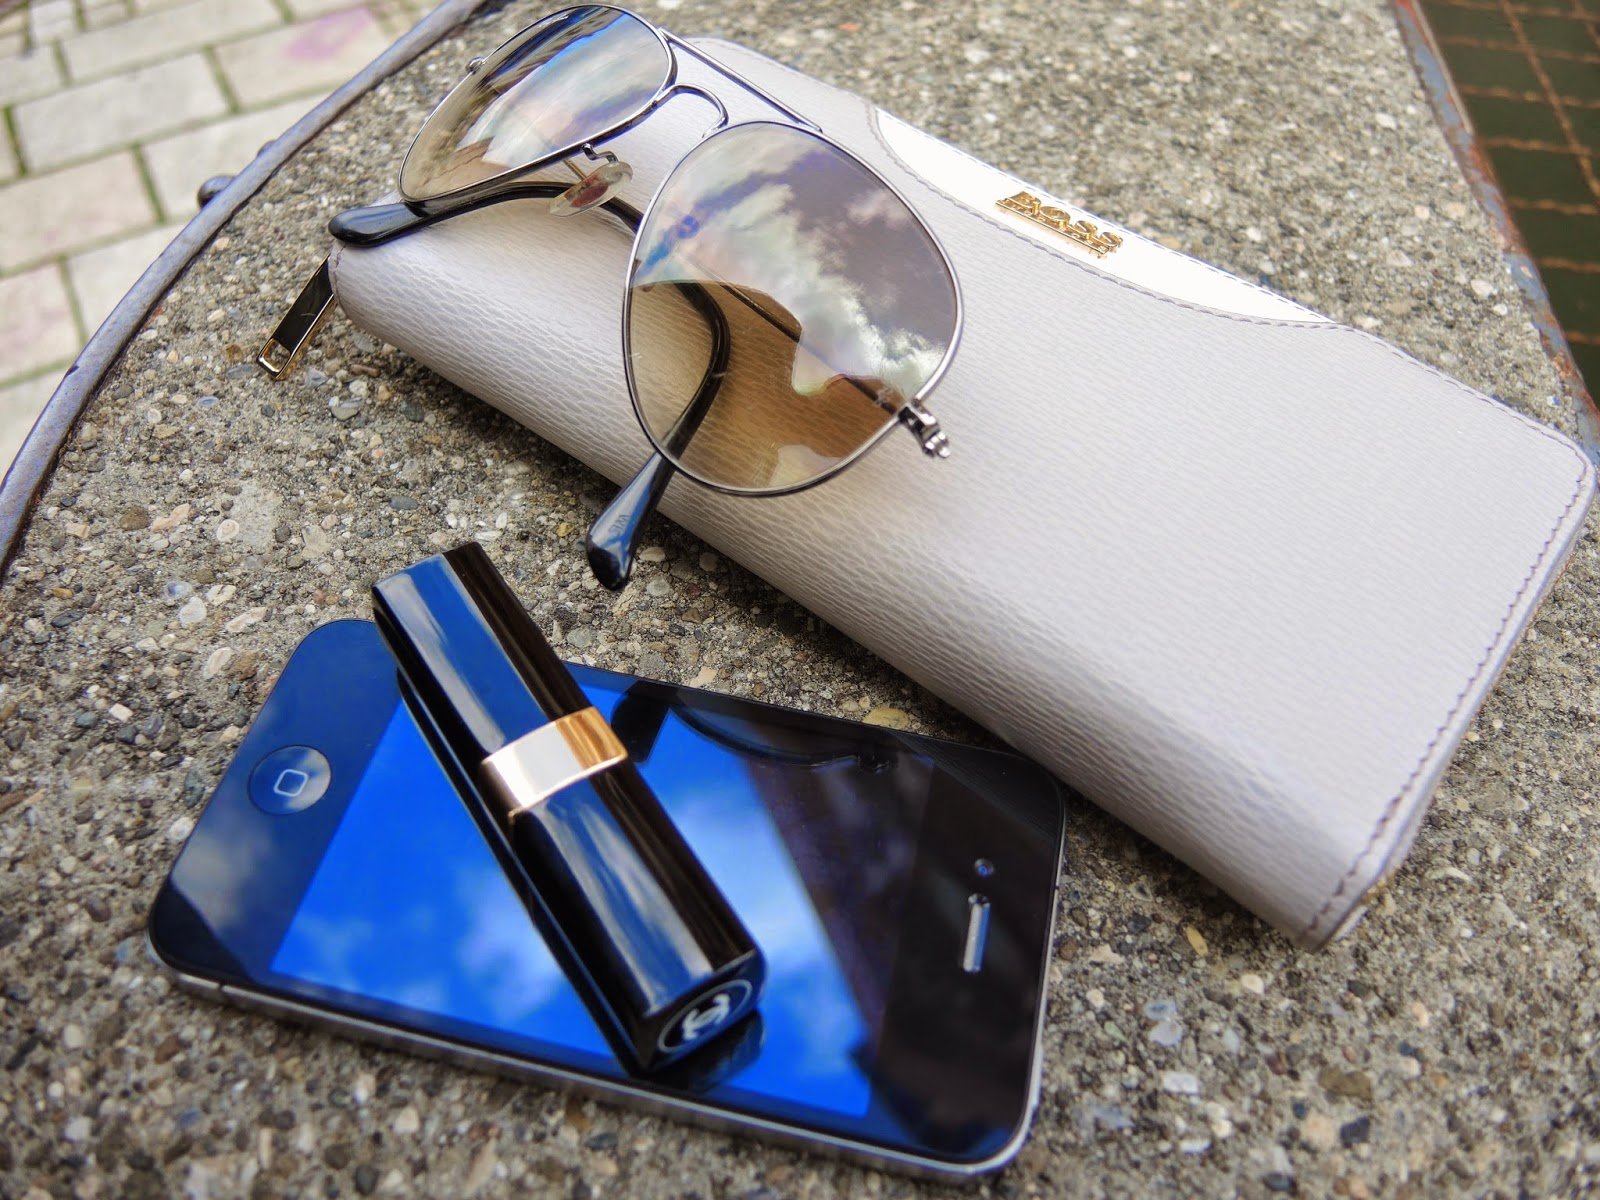 Boss, Ray Ban , Chanel Iphone